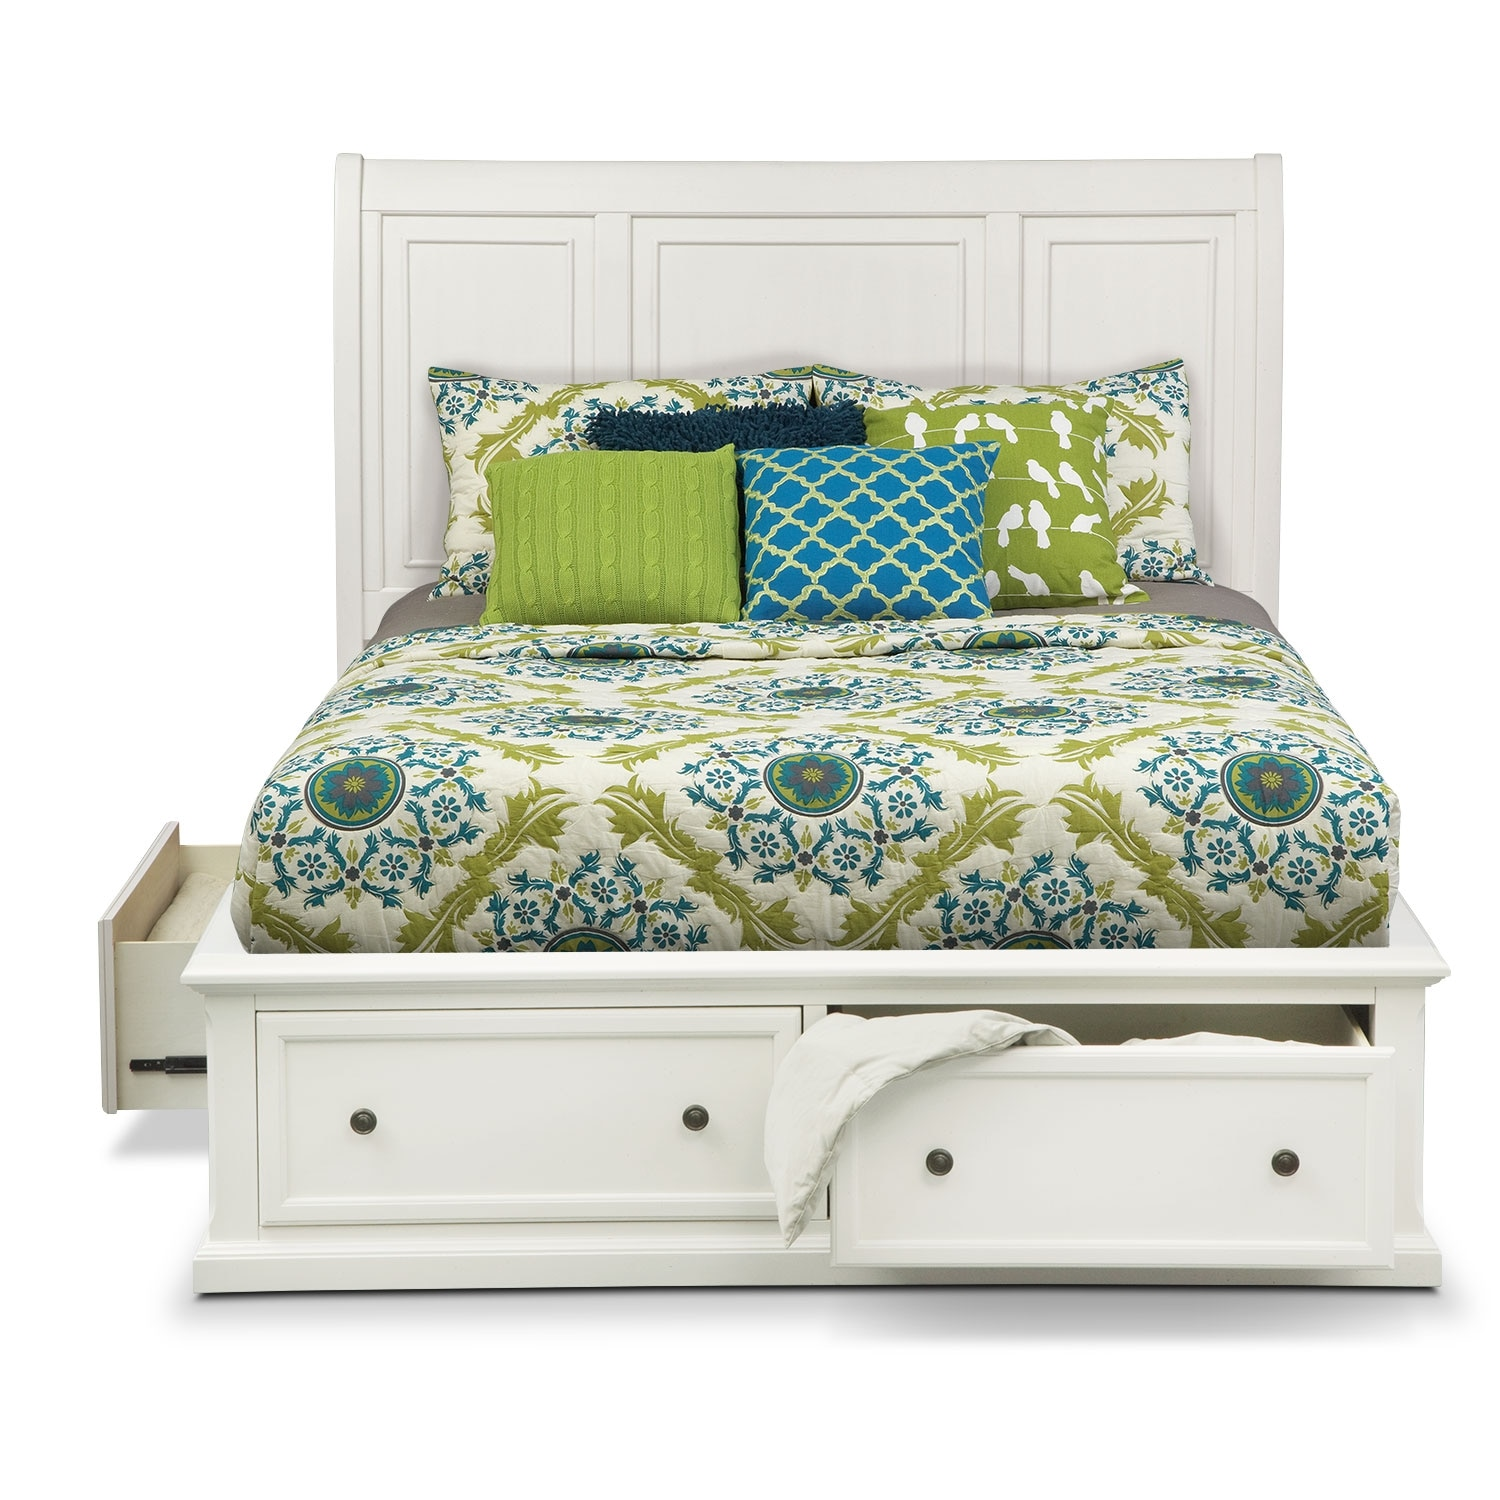 Hanover king storage bed white american signature for Bedroom furniture sets with storage beds